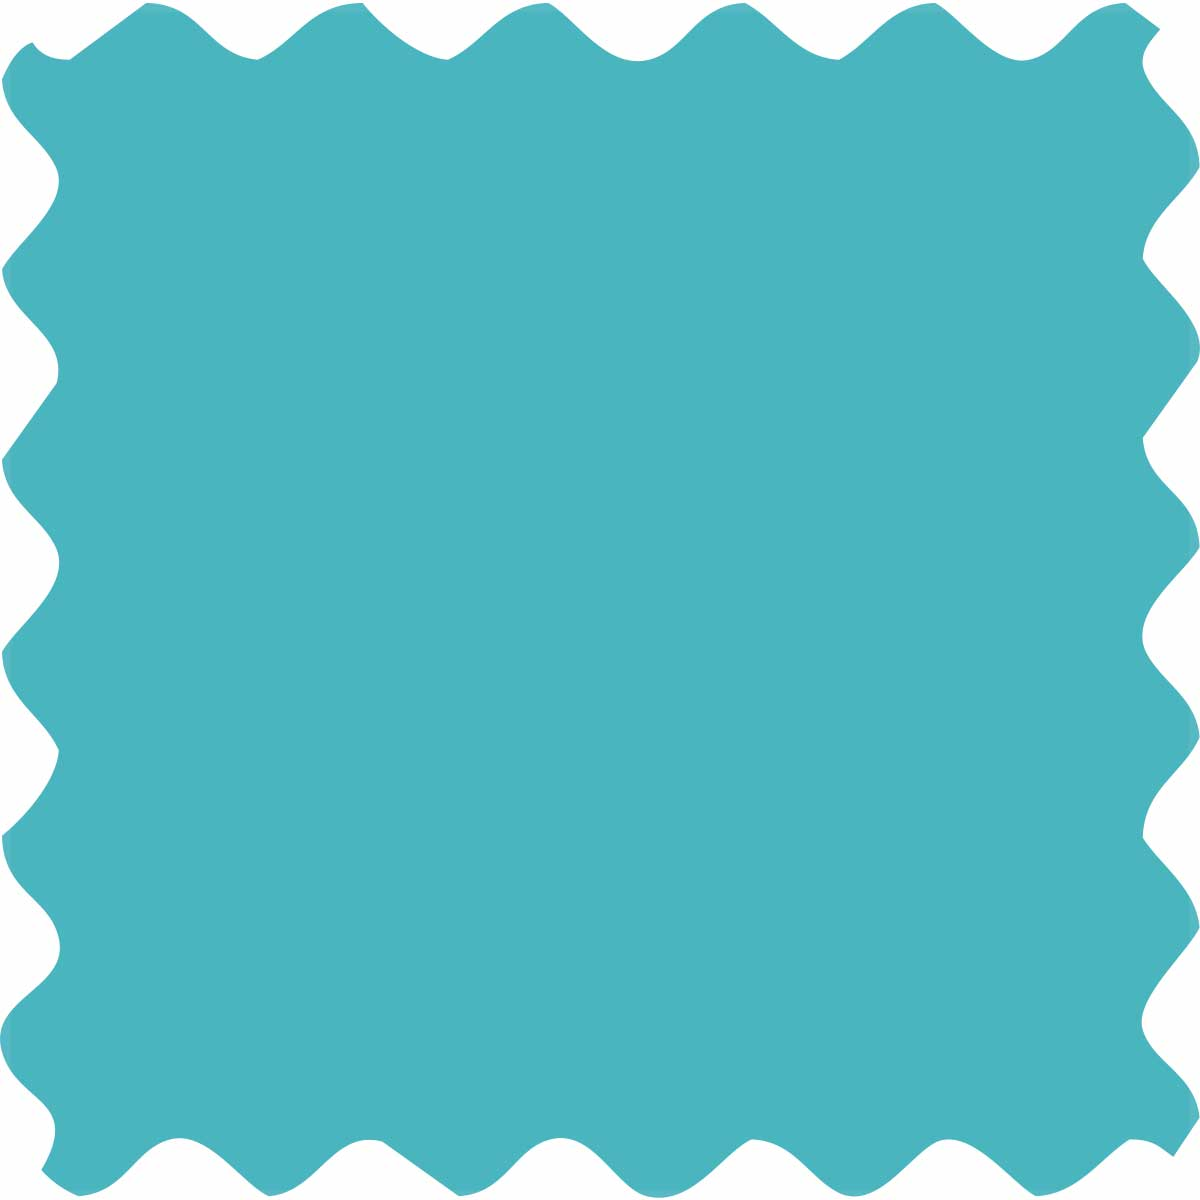 Fabric Creations™ Plush™ 3-D Fabric Paints - Blue Slushie, 2 oz.